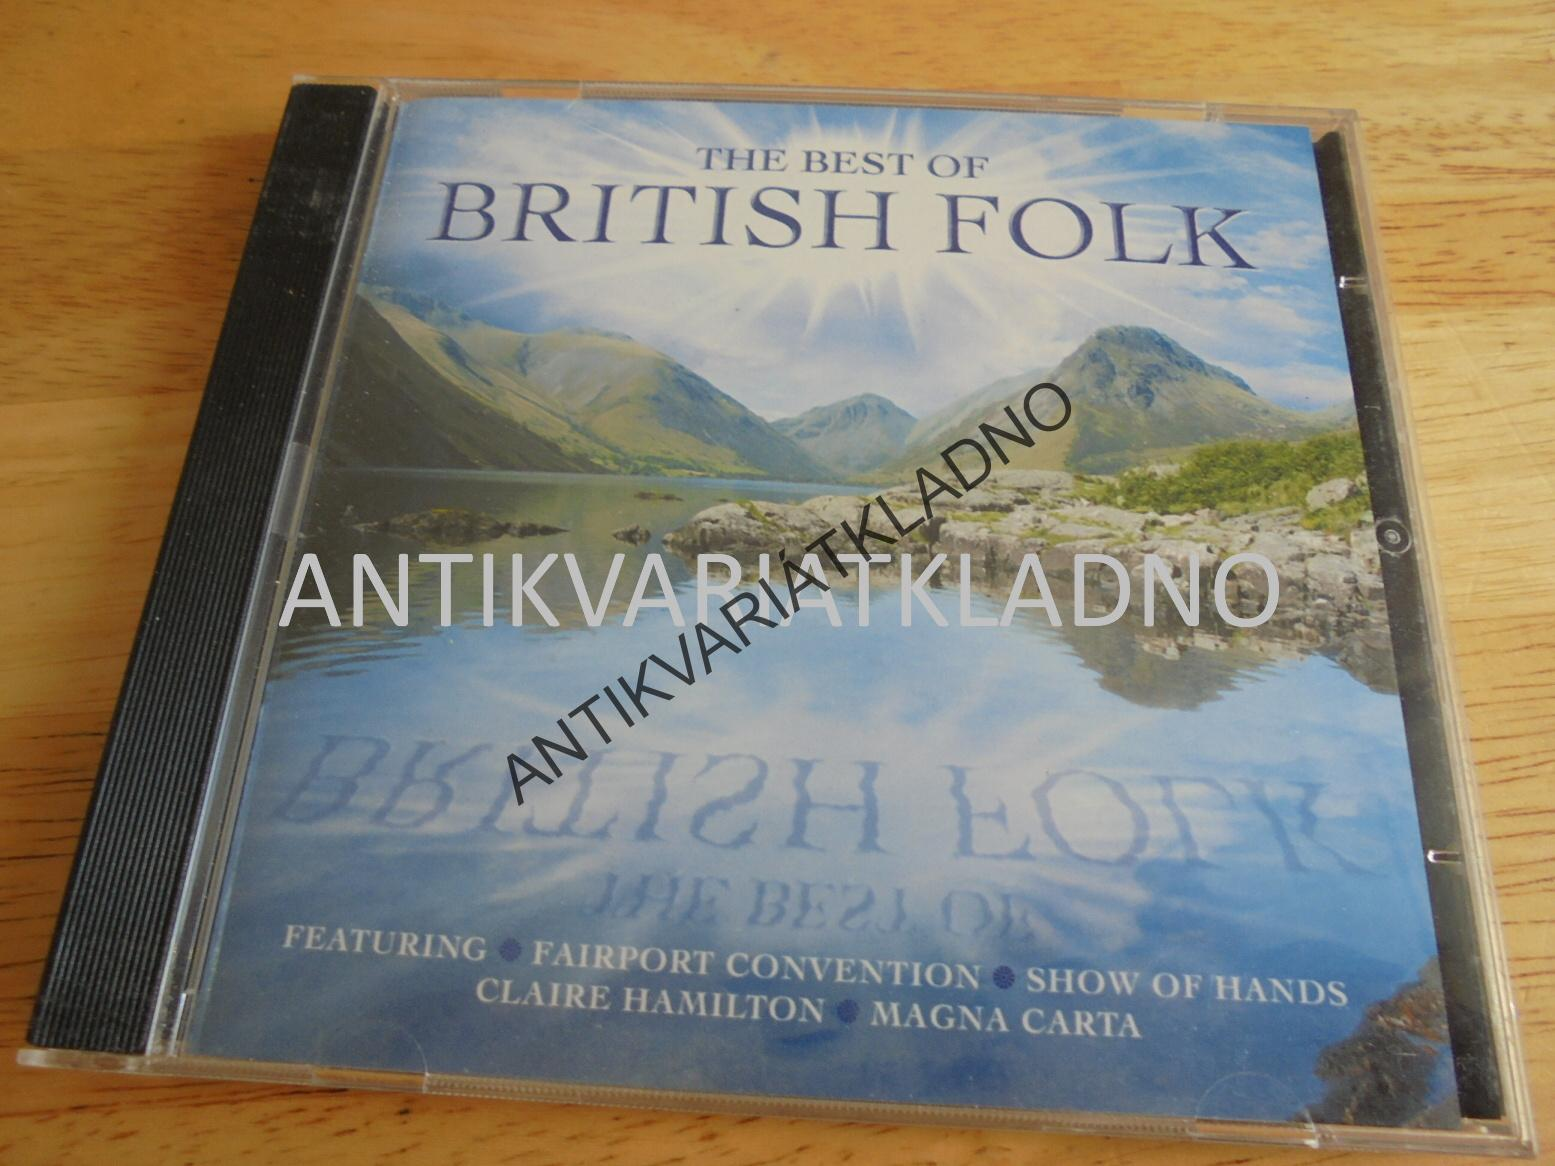 THE BEST OF BRITISH FOLK, CD